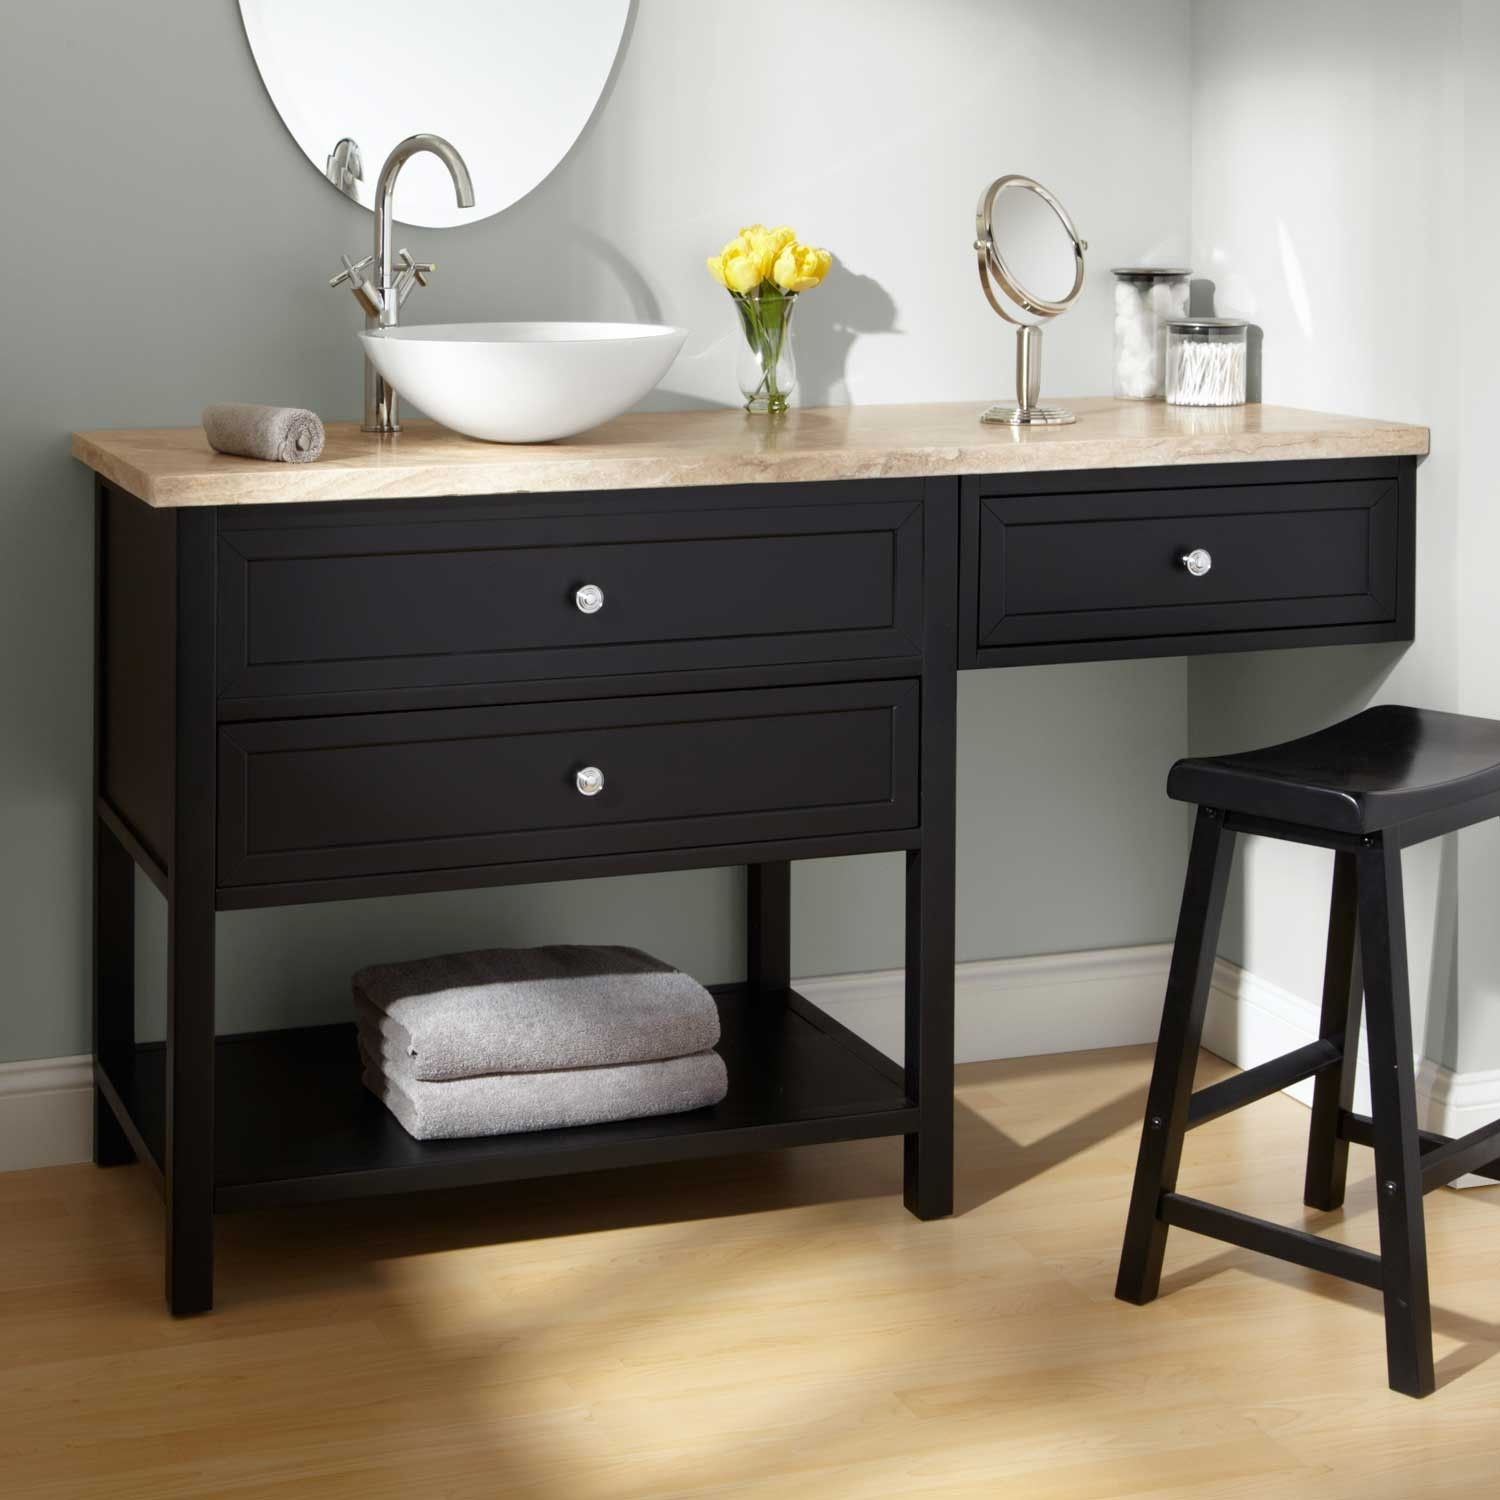 finish ace hypermallapartments luxury vanity bathroom double set black sink hollandale lovely of inch vanities